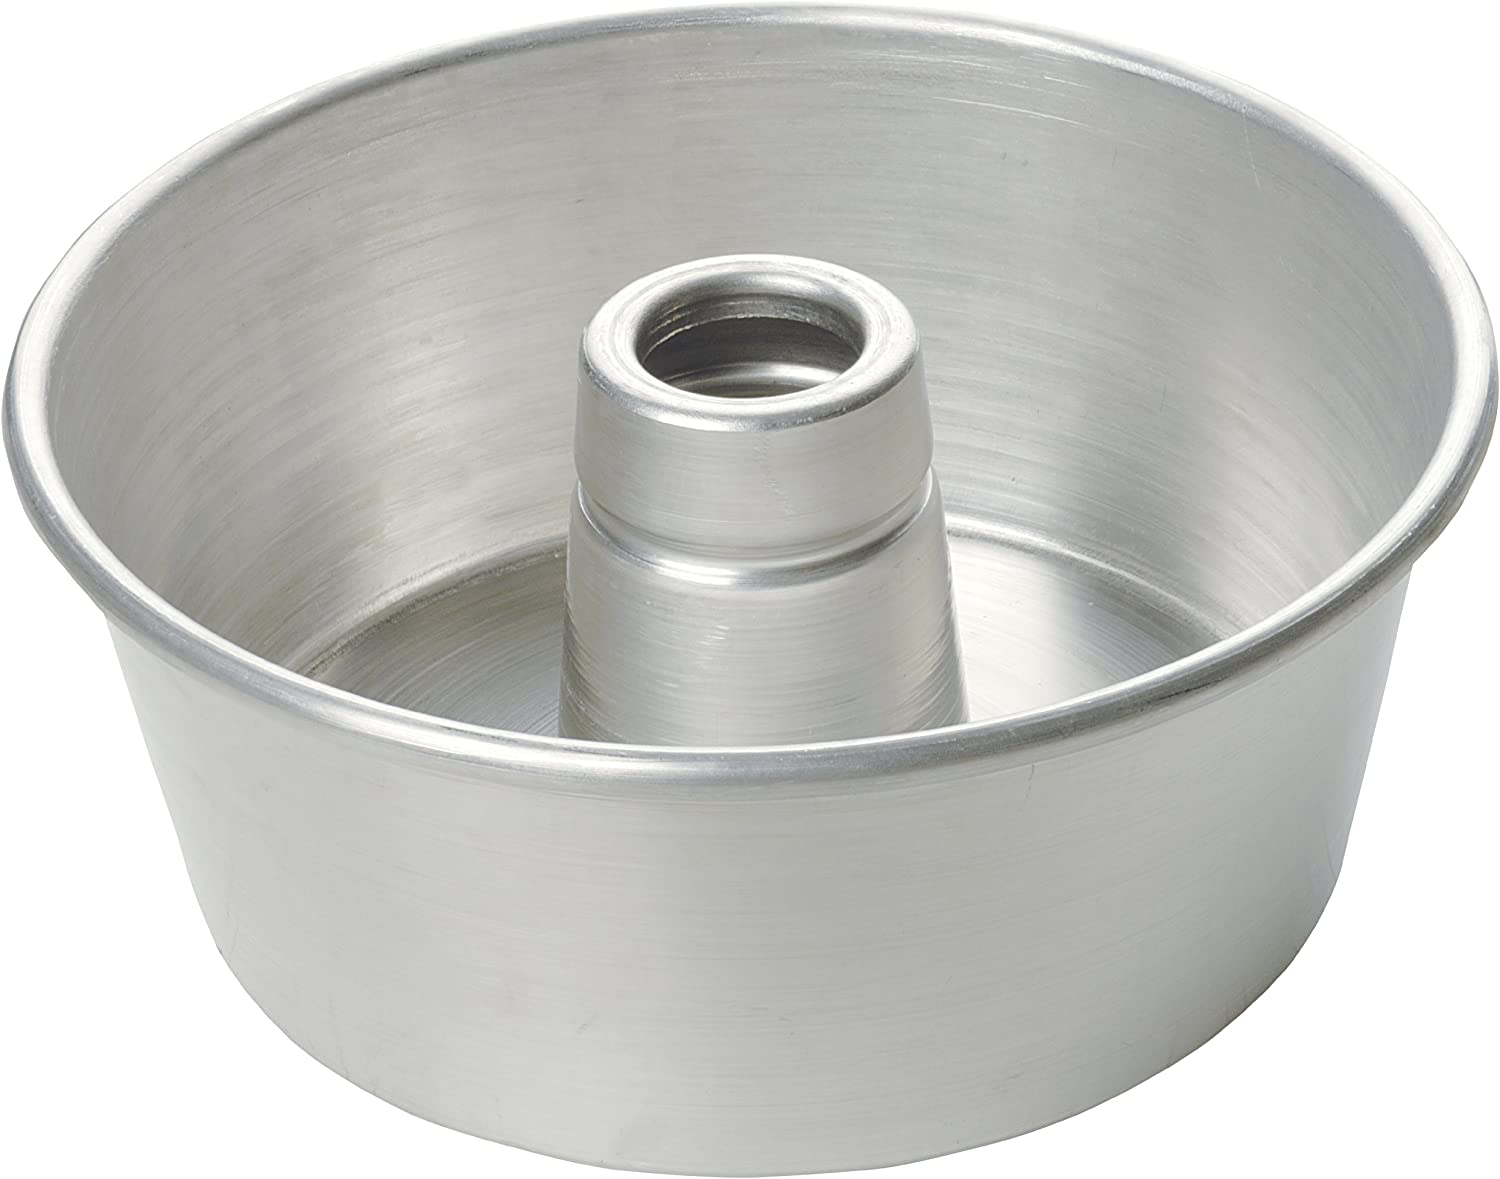 Focus Foodservice Commercial Bakeware 9-1/4-Inch Aluminum Tube Cake Pan